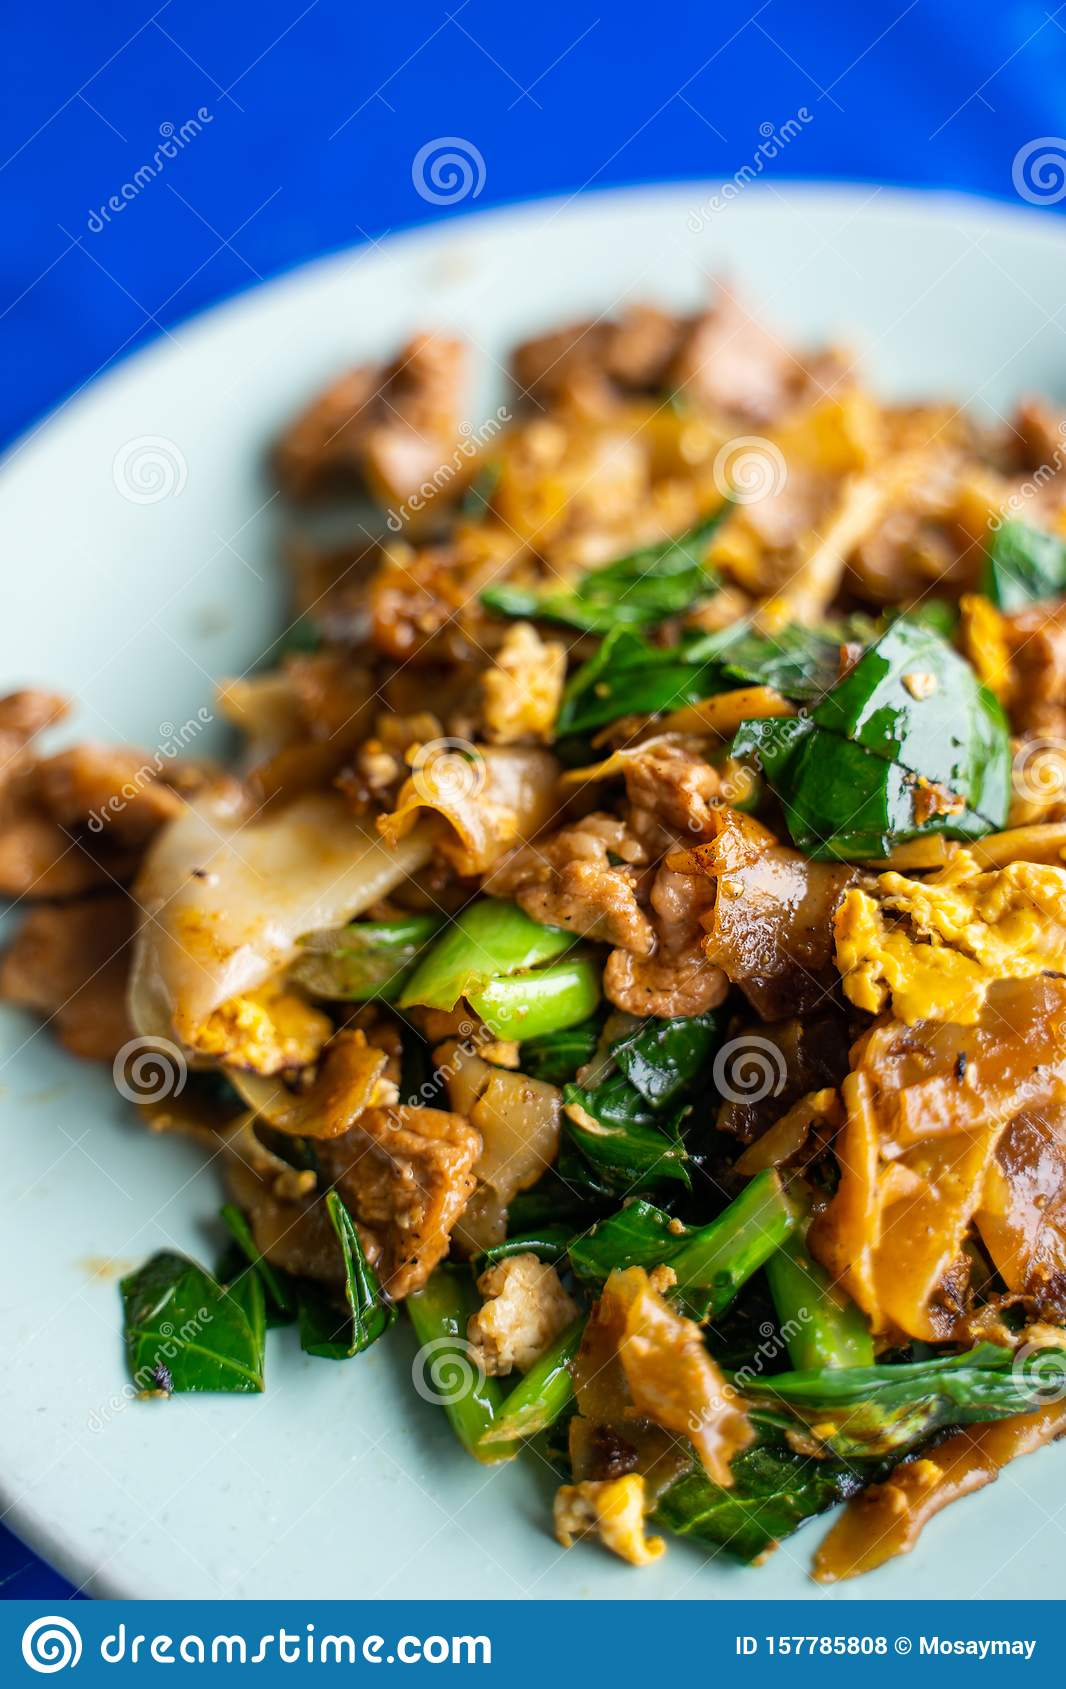 Pad See Ew stir fried noodle with black soy sauce